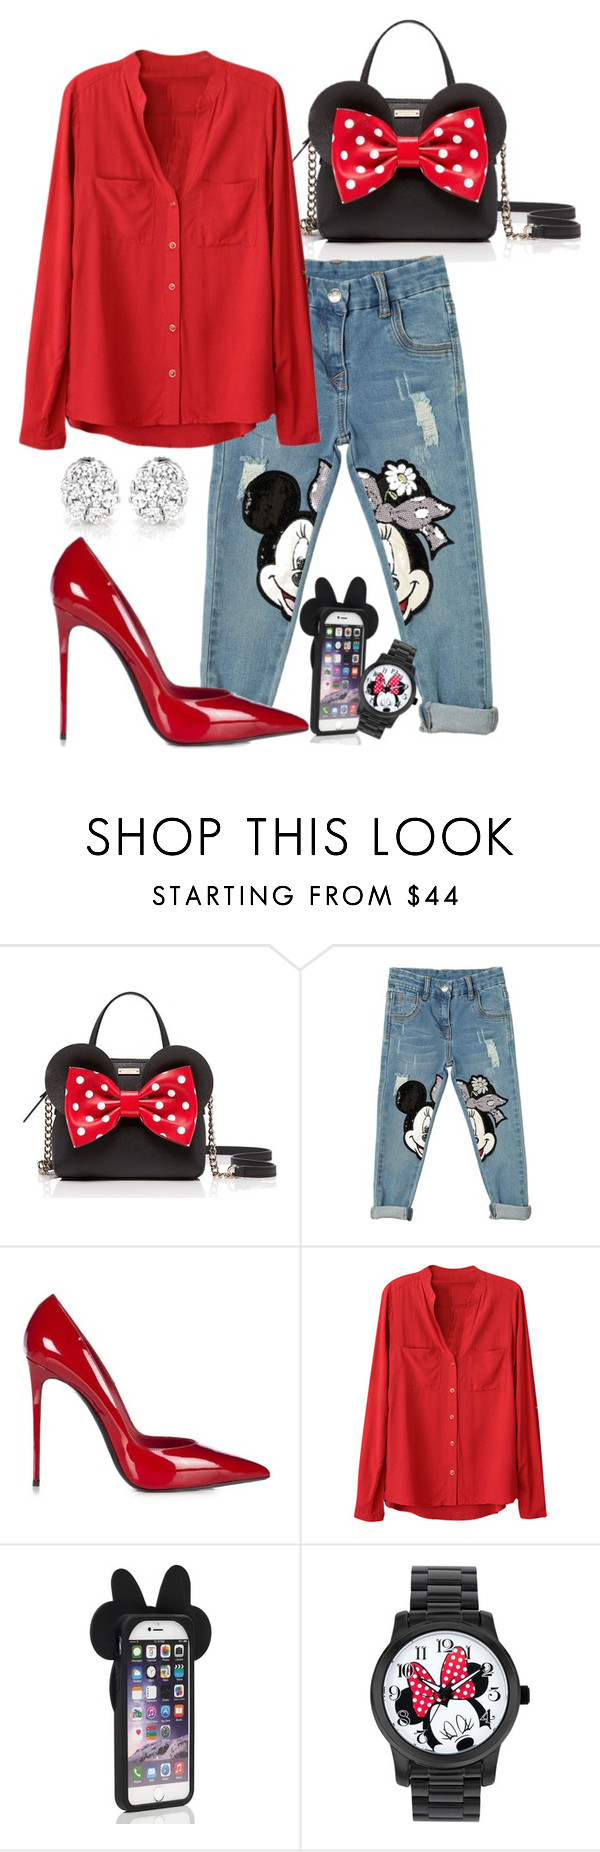 """""""Classic Toon Love"""" by perichaze ❤ liked on Polyvore featuring Kate Spade, Monnalisa, Le Silla and Disney"""